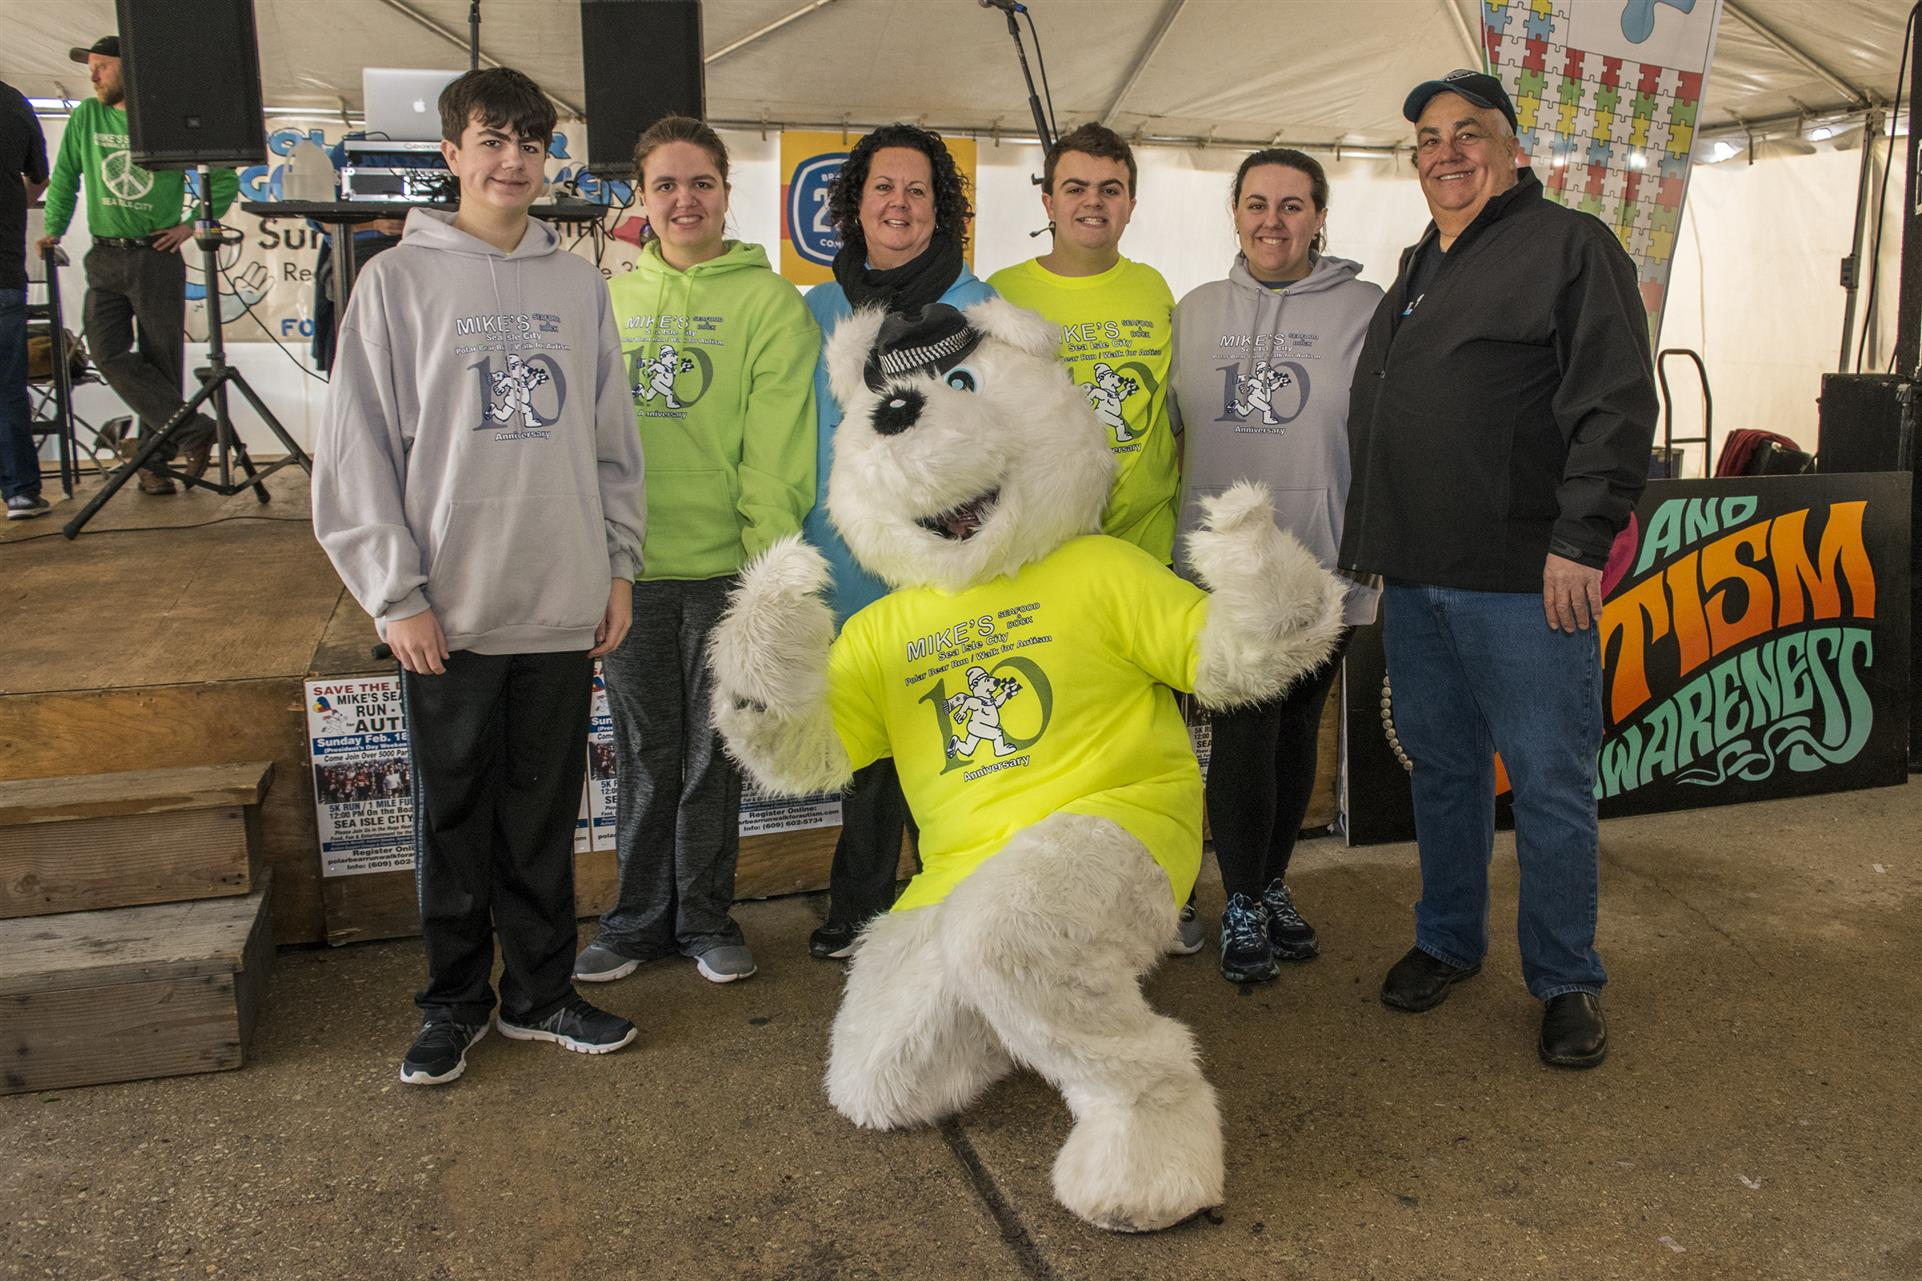 a mascot in a polar berar suit posing with rac runners